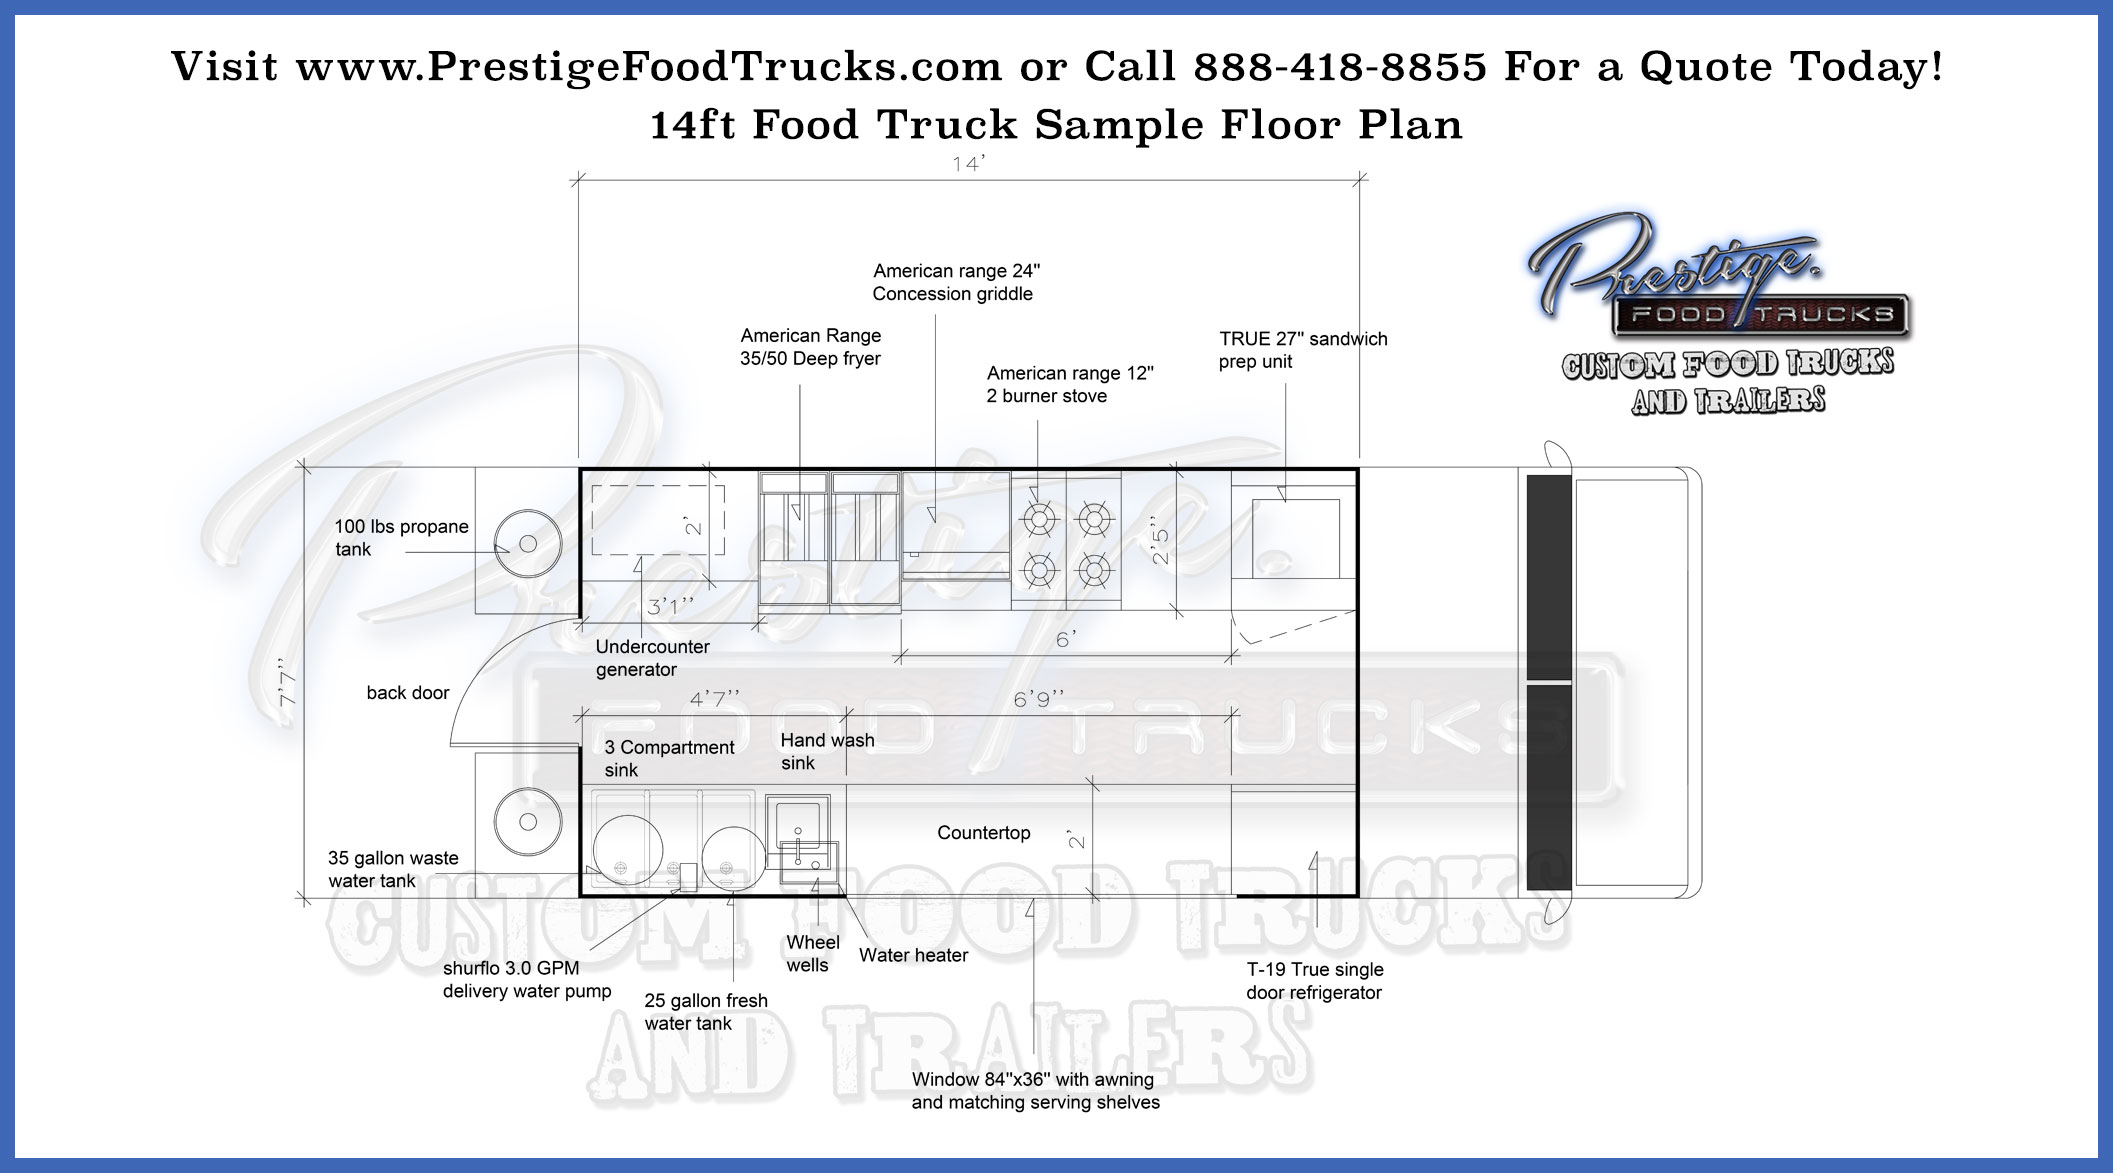 Build your custom truck for Design your own food truck online